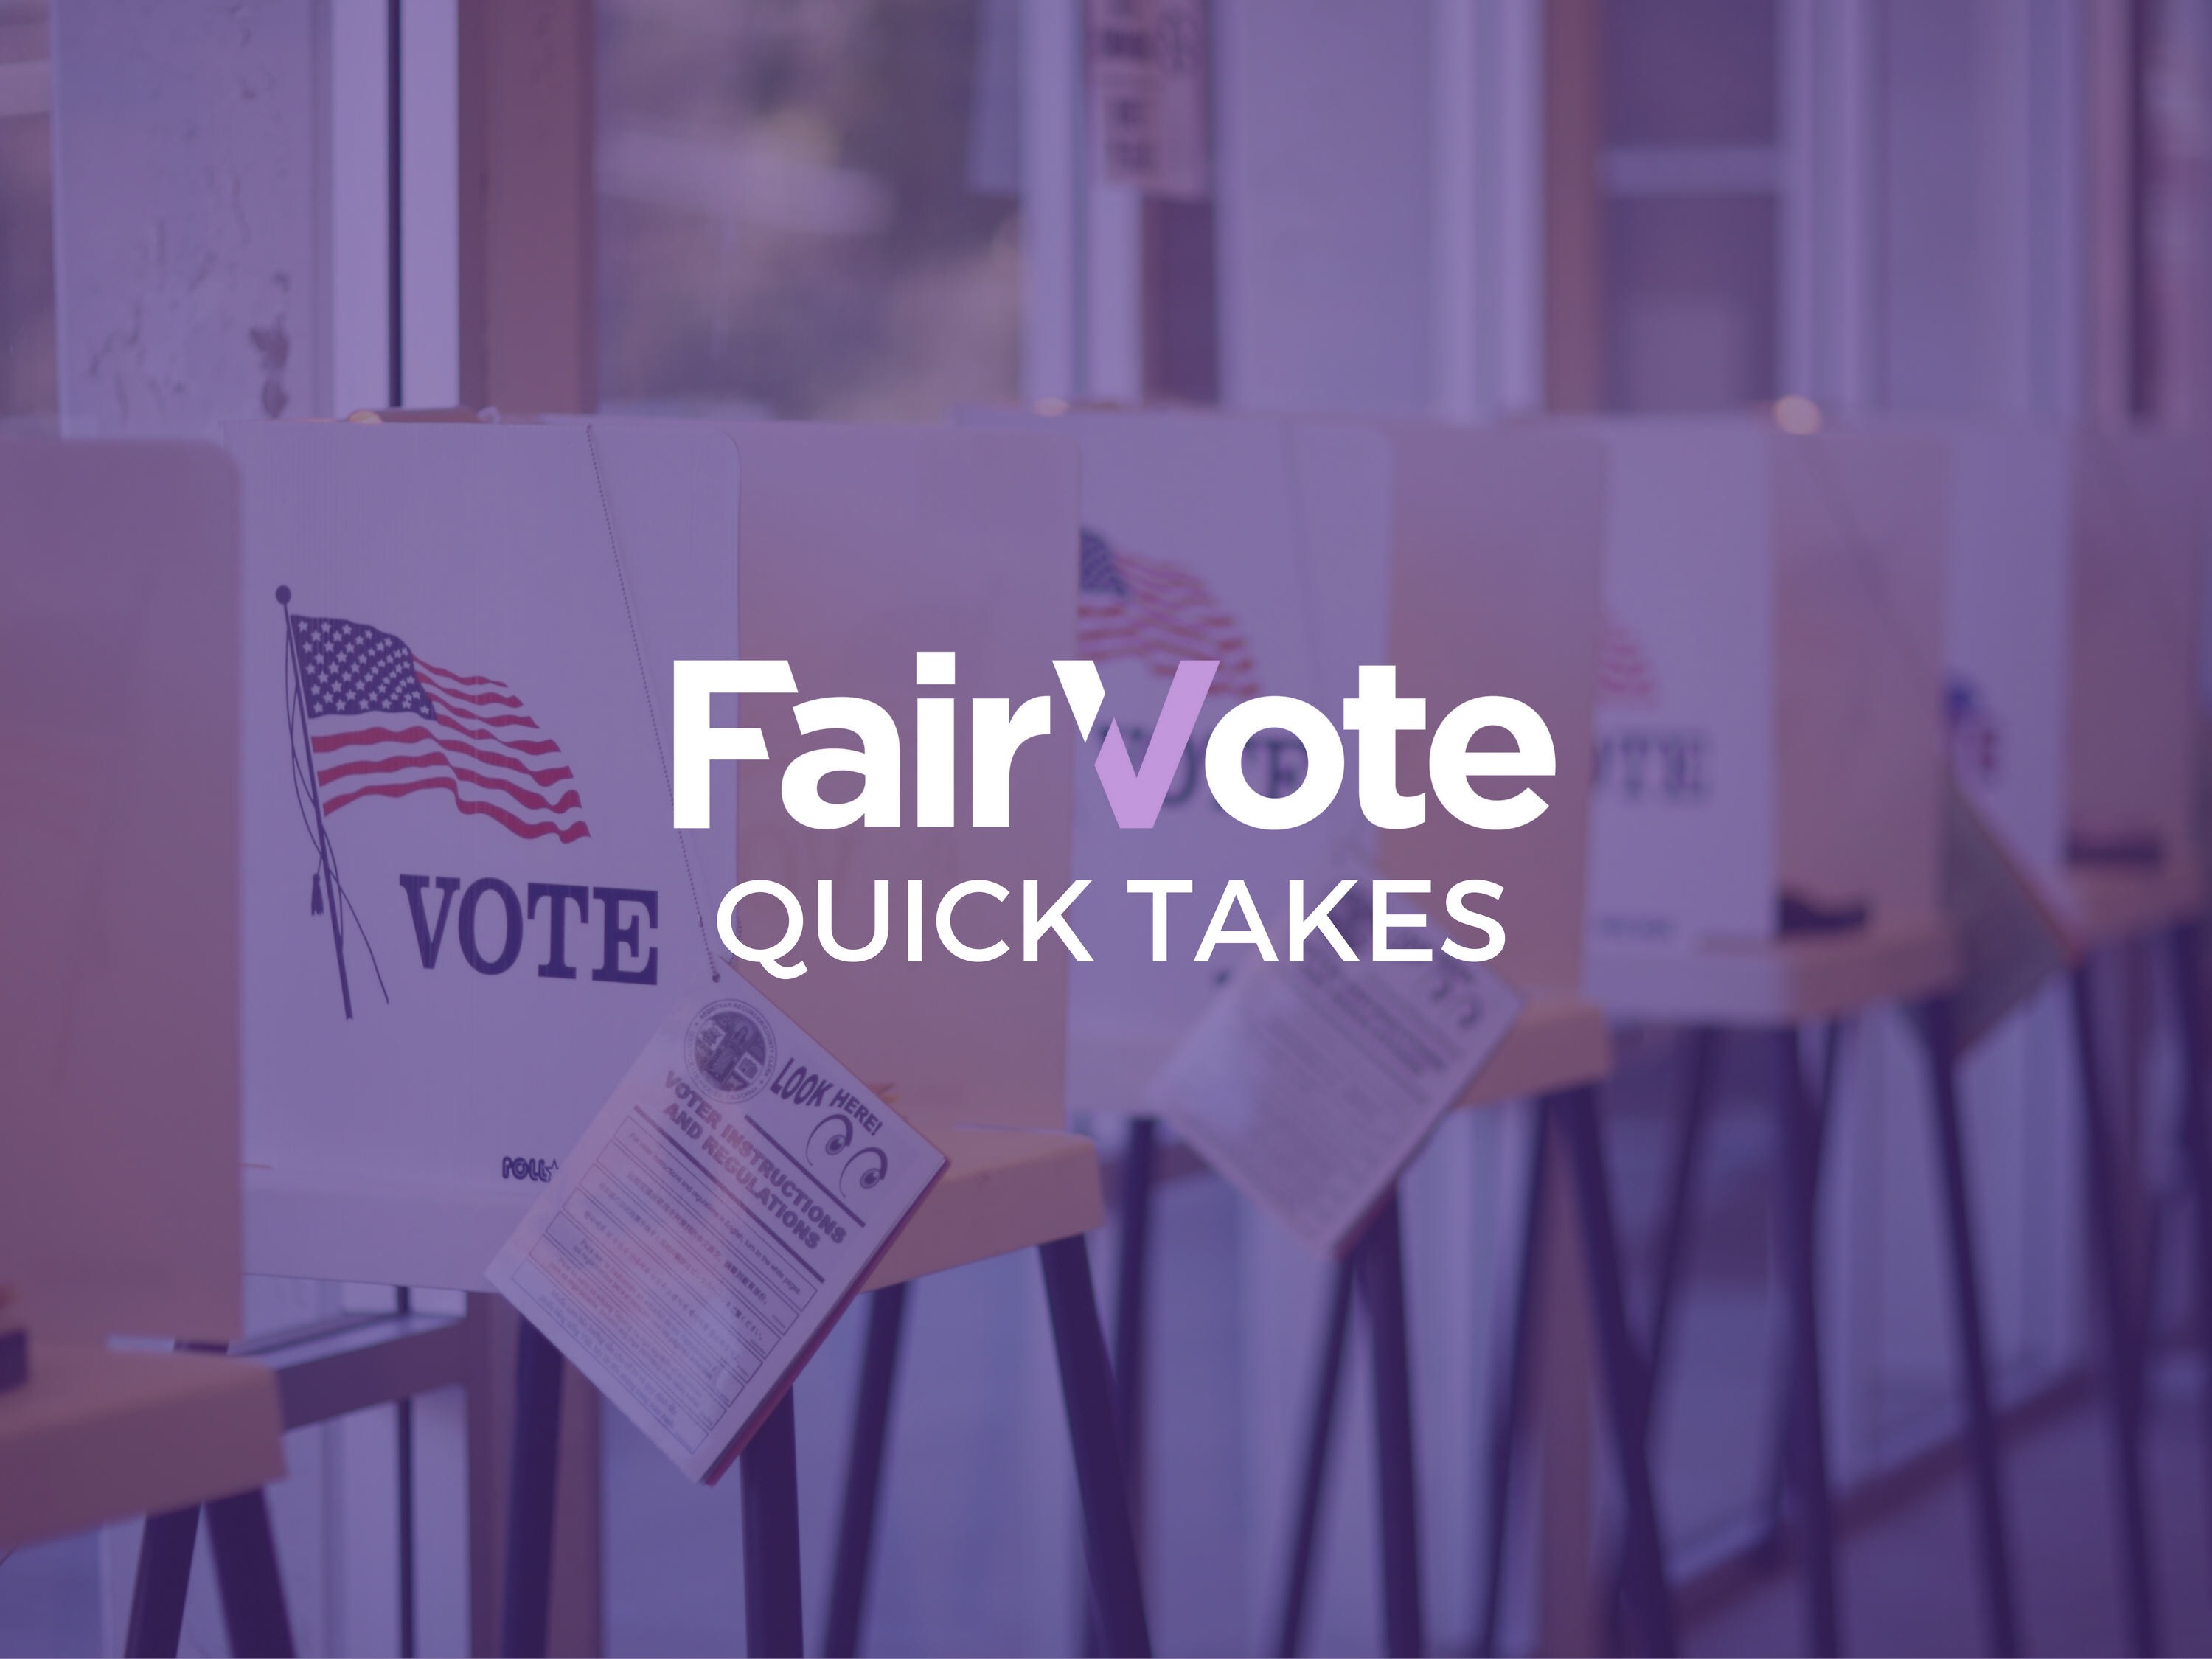 FairVote launches new